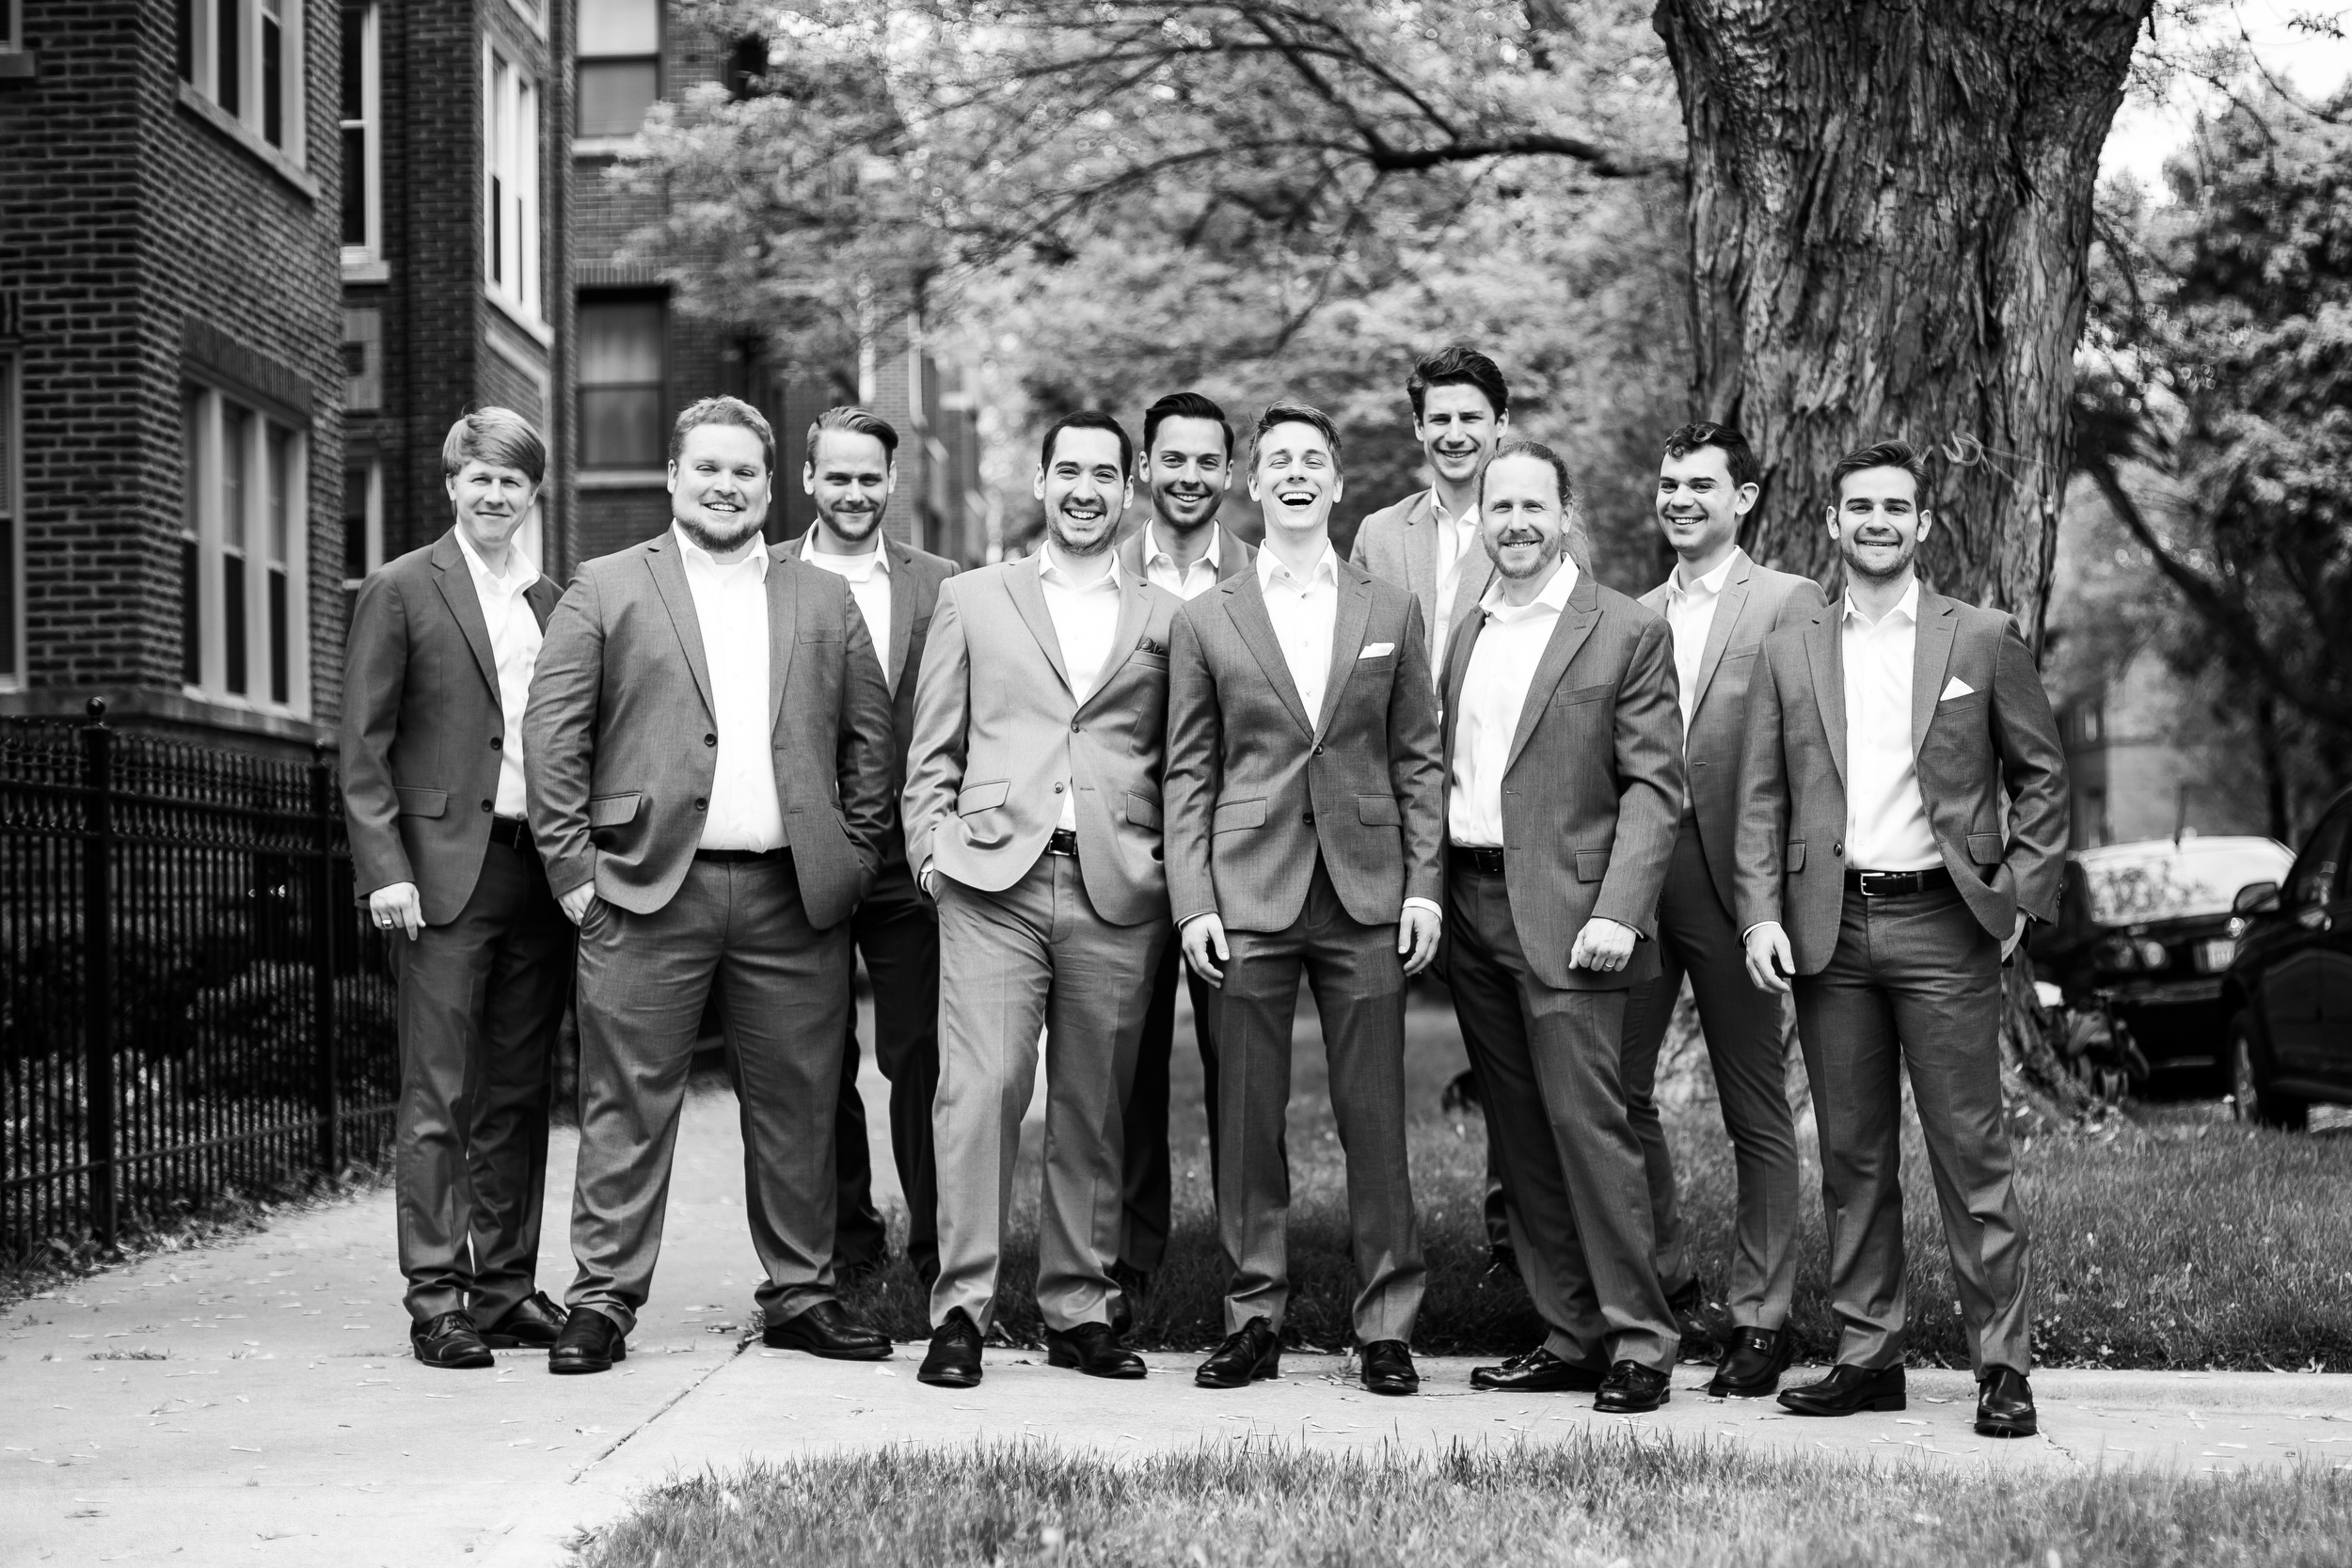 Groom and groomsmen pose for wedding photos for Carnivale Chicago wedding captured by J Brown Photography